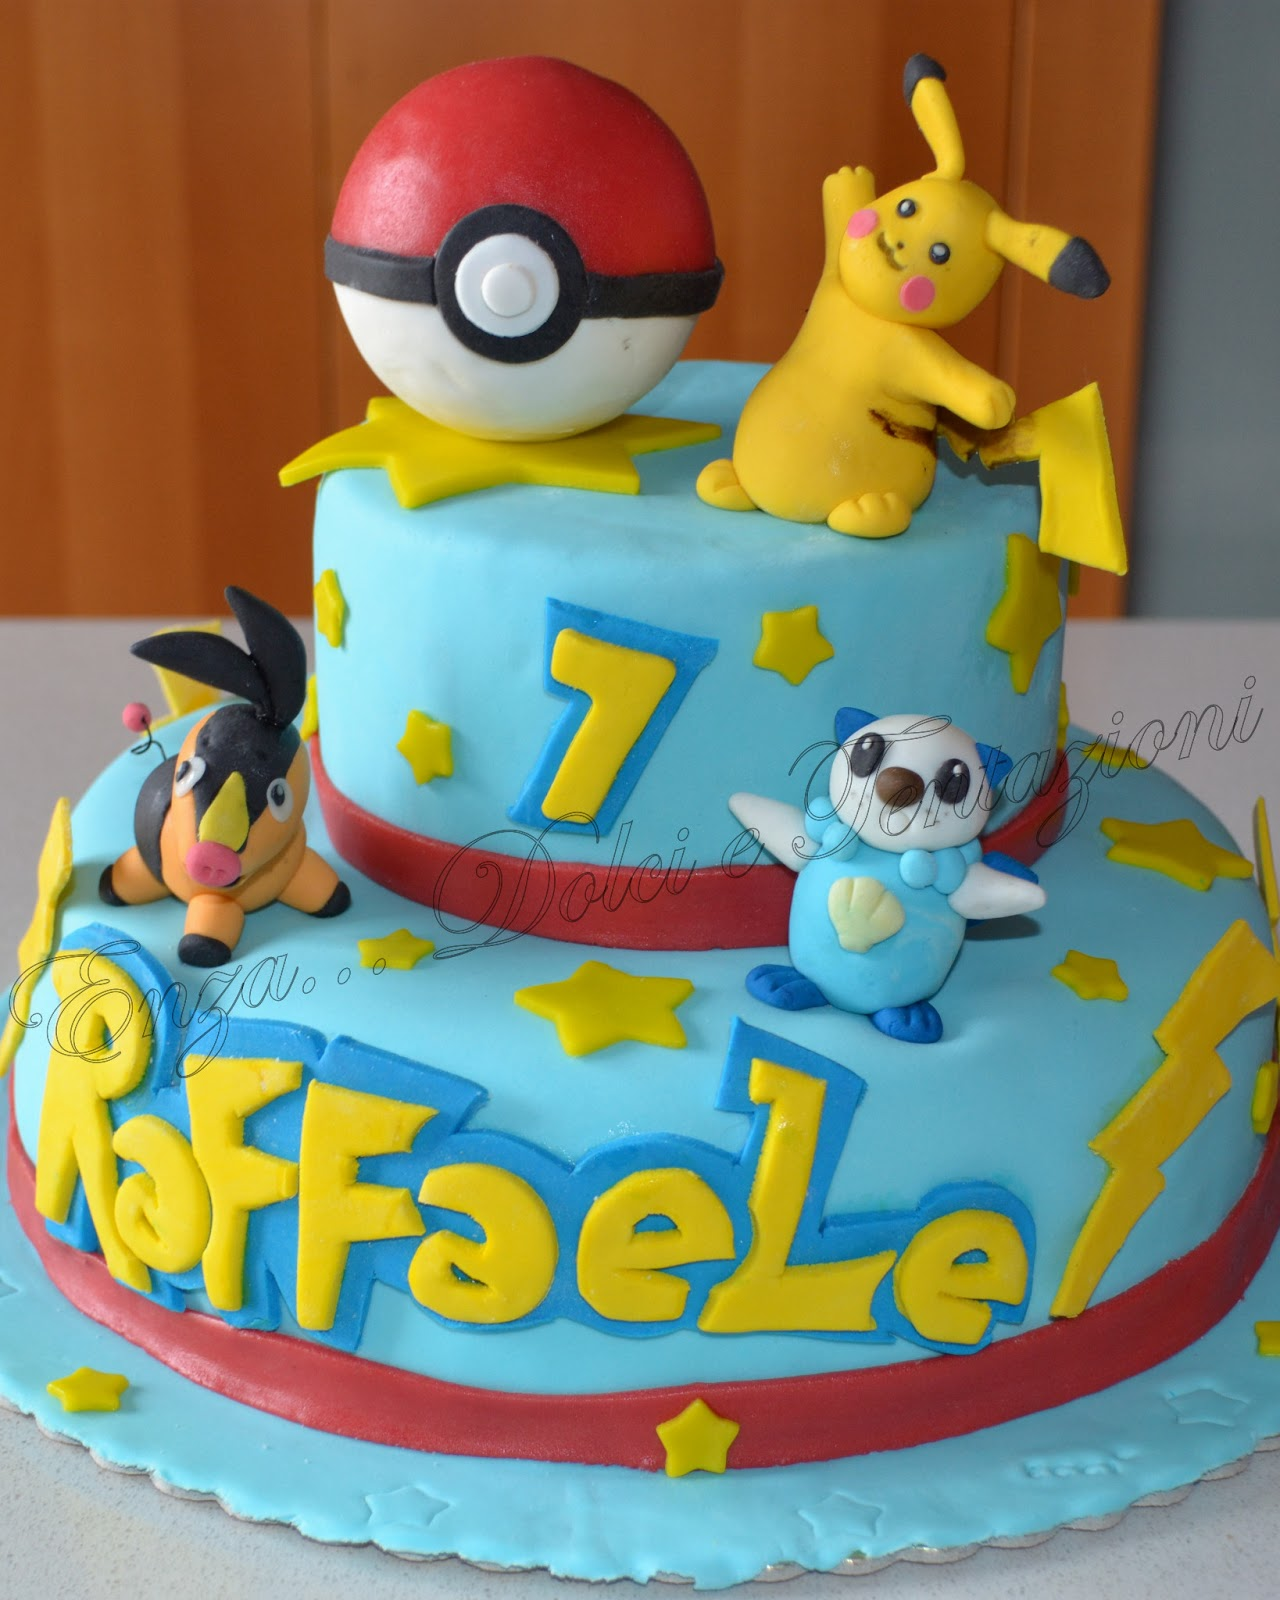 dolci decorazionietentazioni torta pokemon con tutto il mio amore. Black Bedroom Furniture Sets. Home Design Ideas